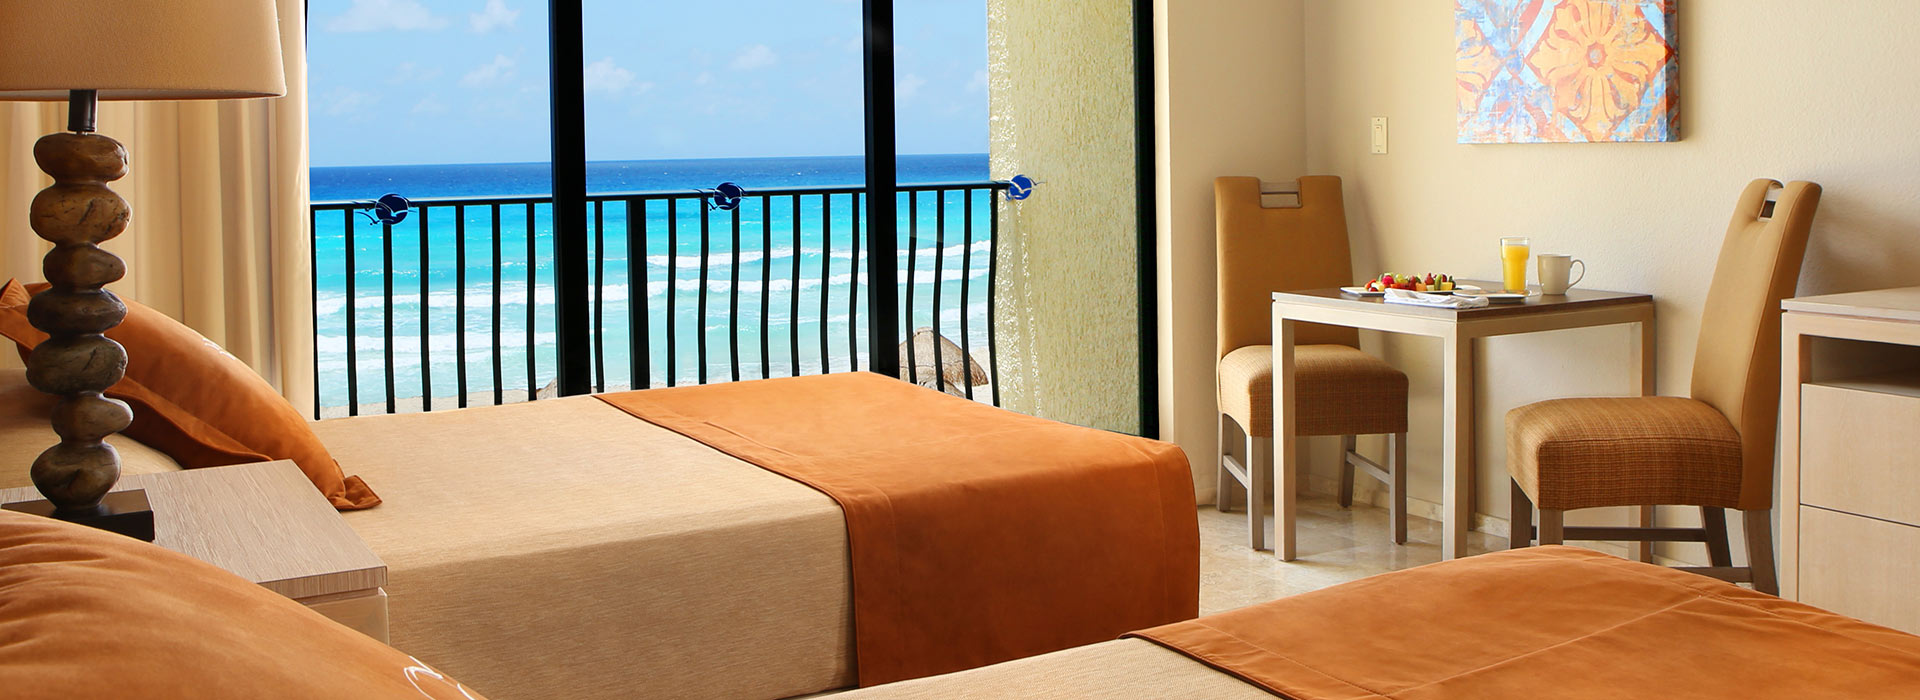 Beachfront Junior suite with ample seating area by the Mexican Caribbean Sea